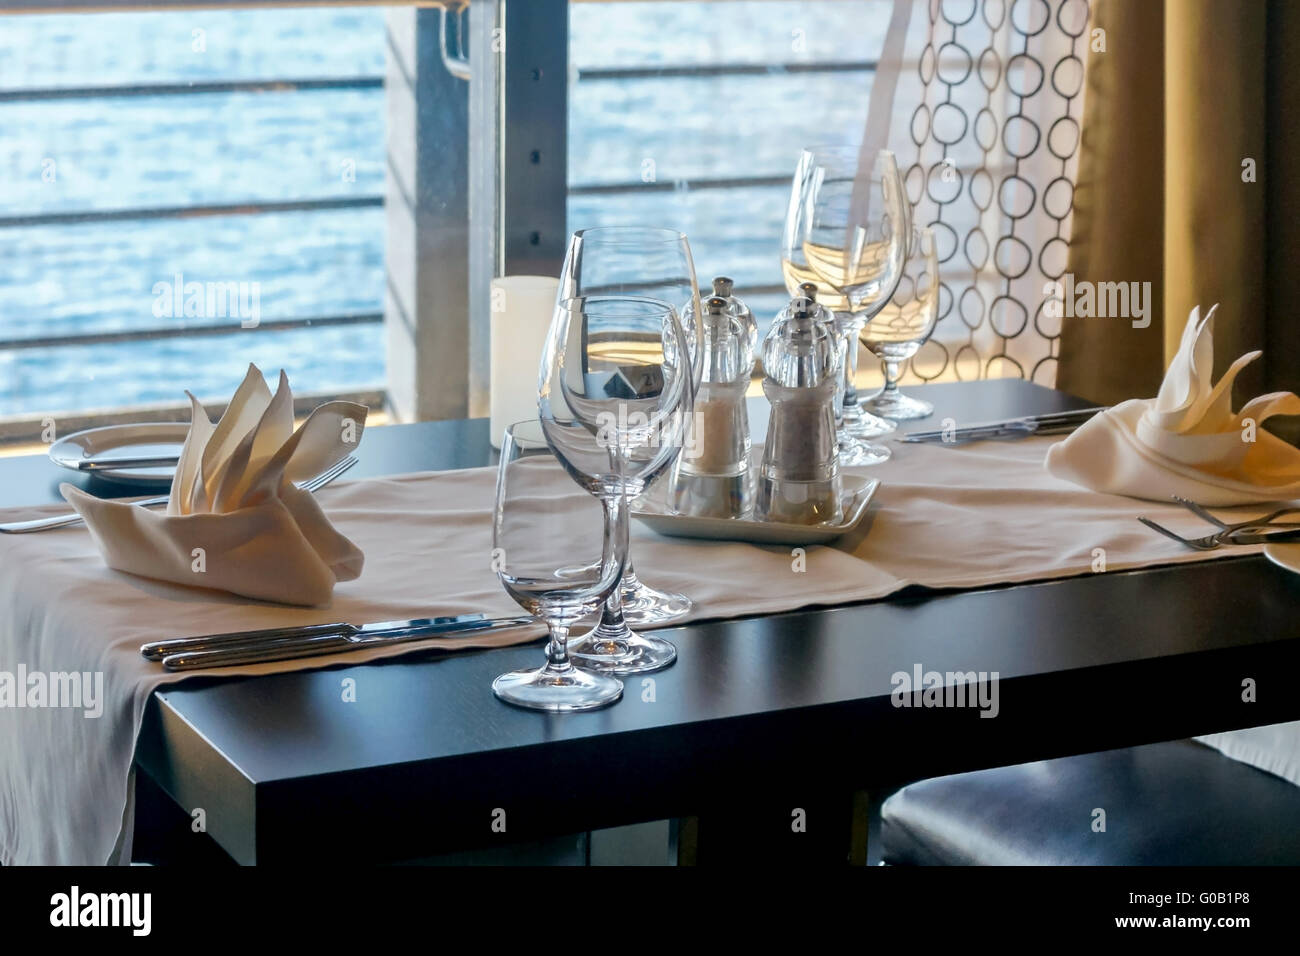 Laid table by the window with ocean in background - Stock Image